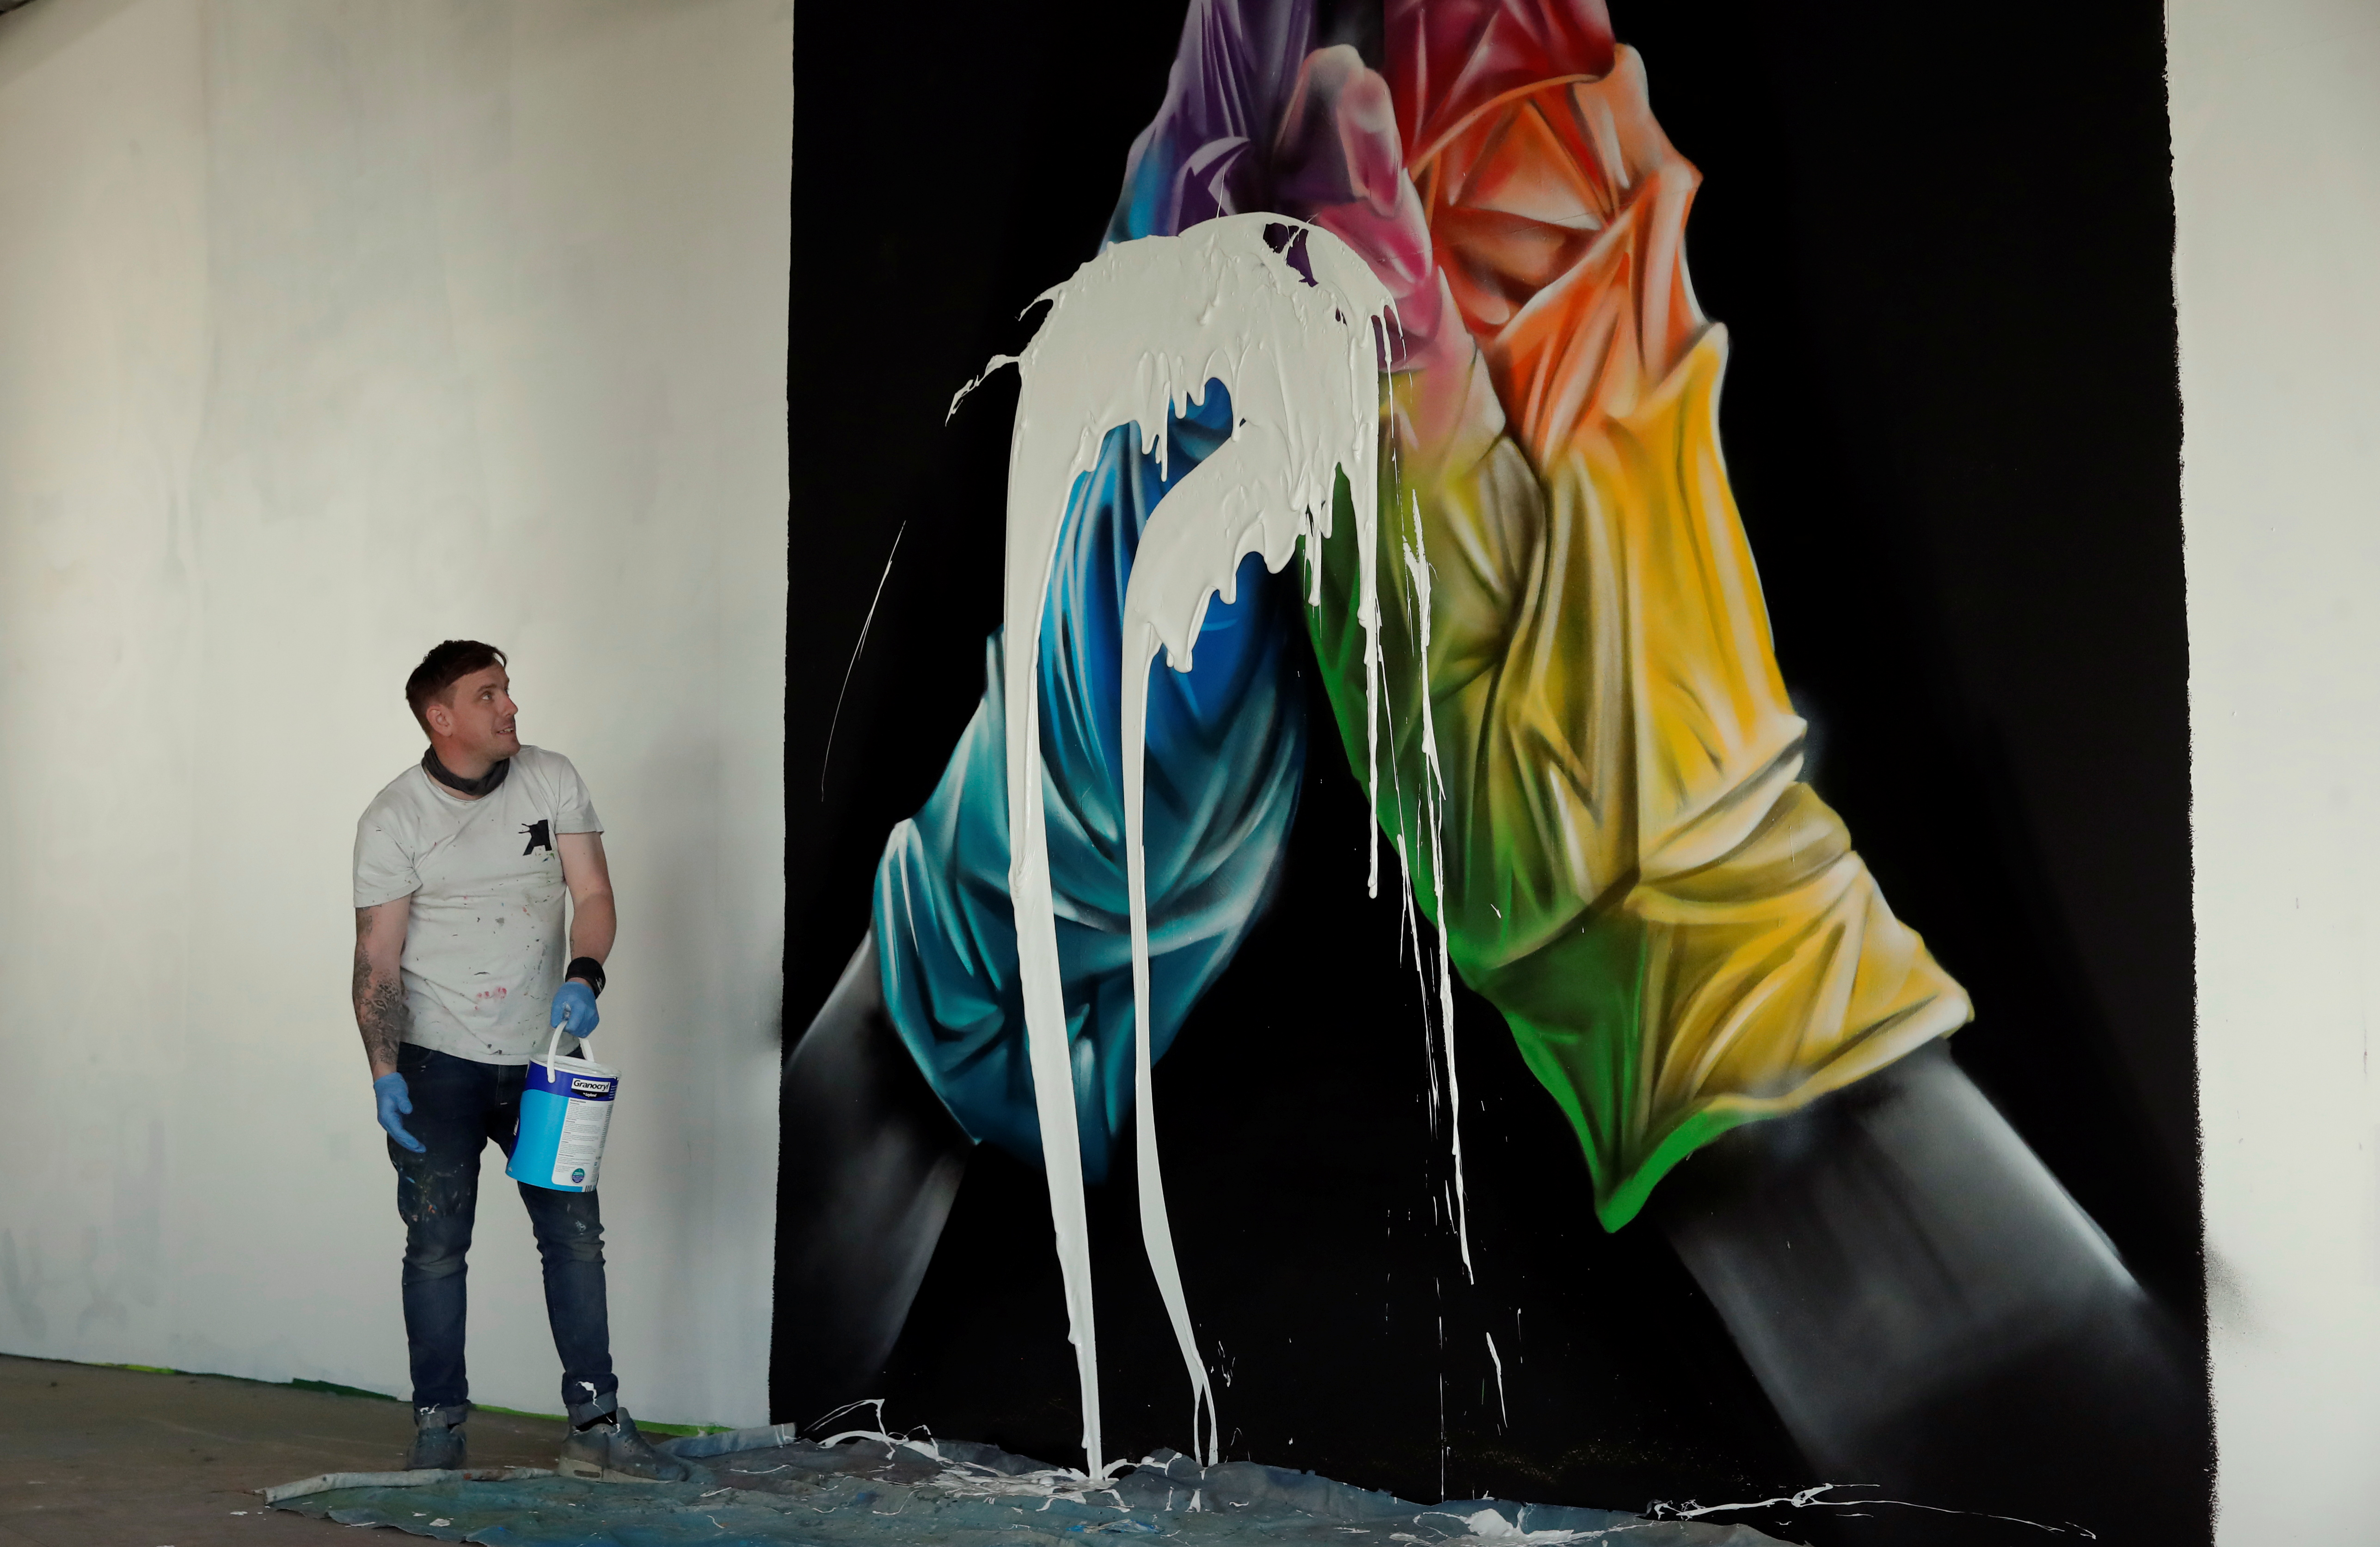 Street artist Nathan Murdoch looks at the artwork with paint splattered over it, as he creates a piece of crypto art to be auctioned with proceeds donated to the NHS in Peterborough, Britain, April 15, 2021. REUTERS/Andrew Couldridge